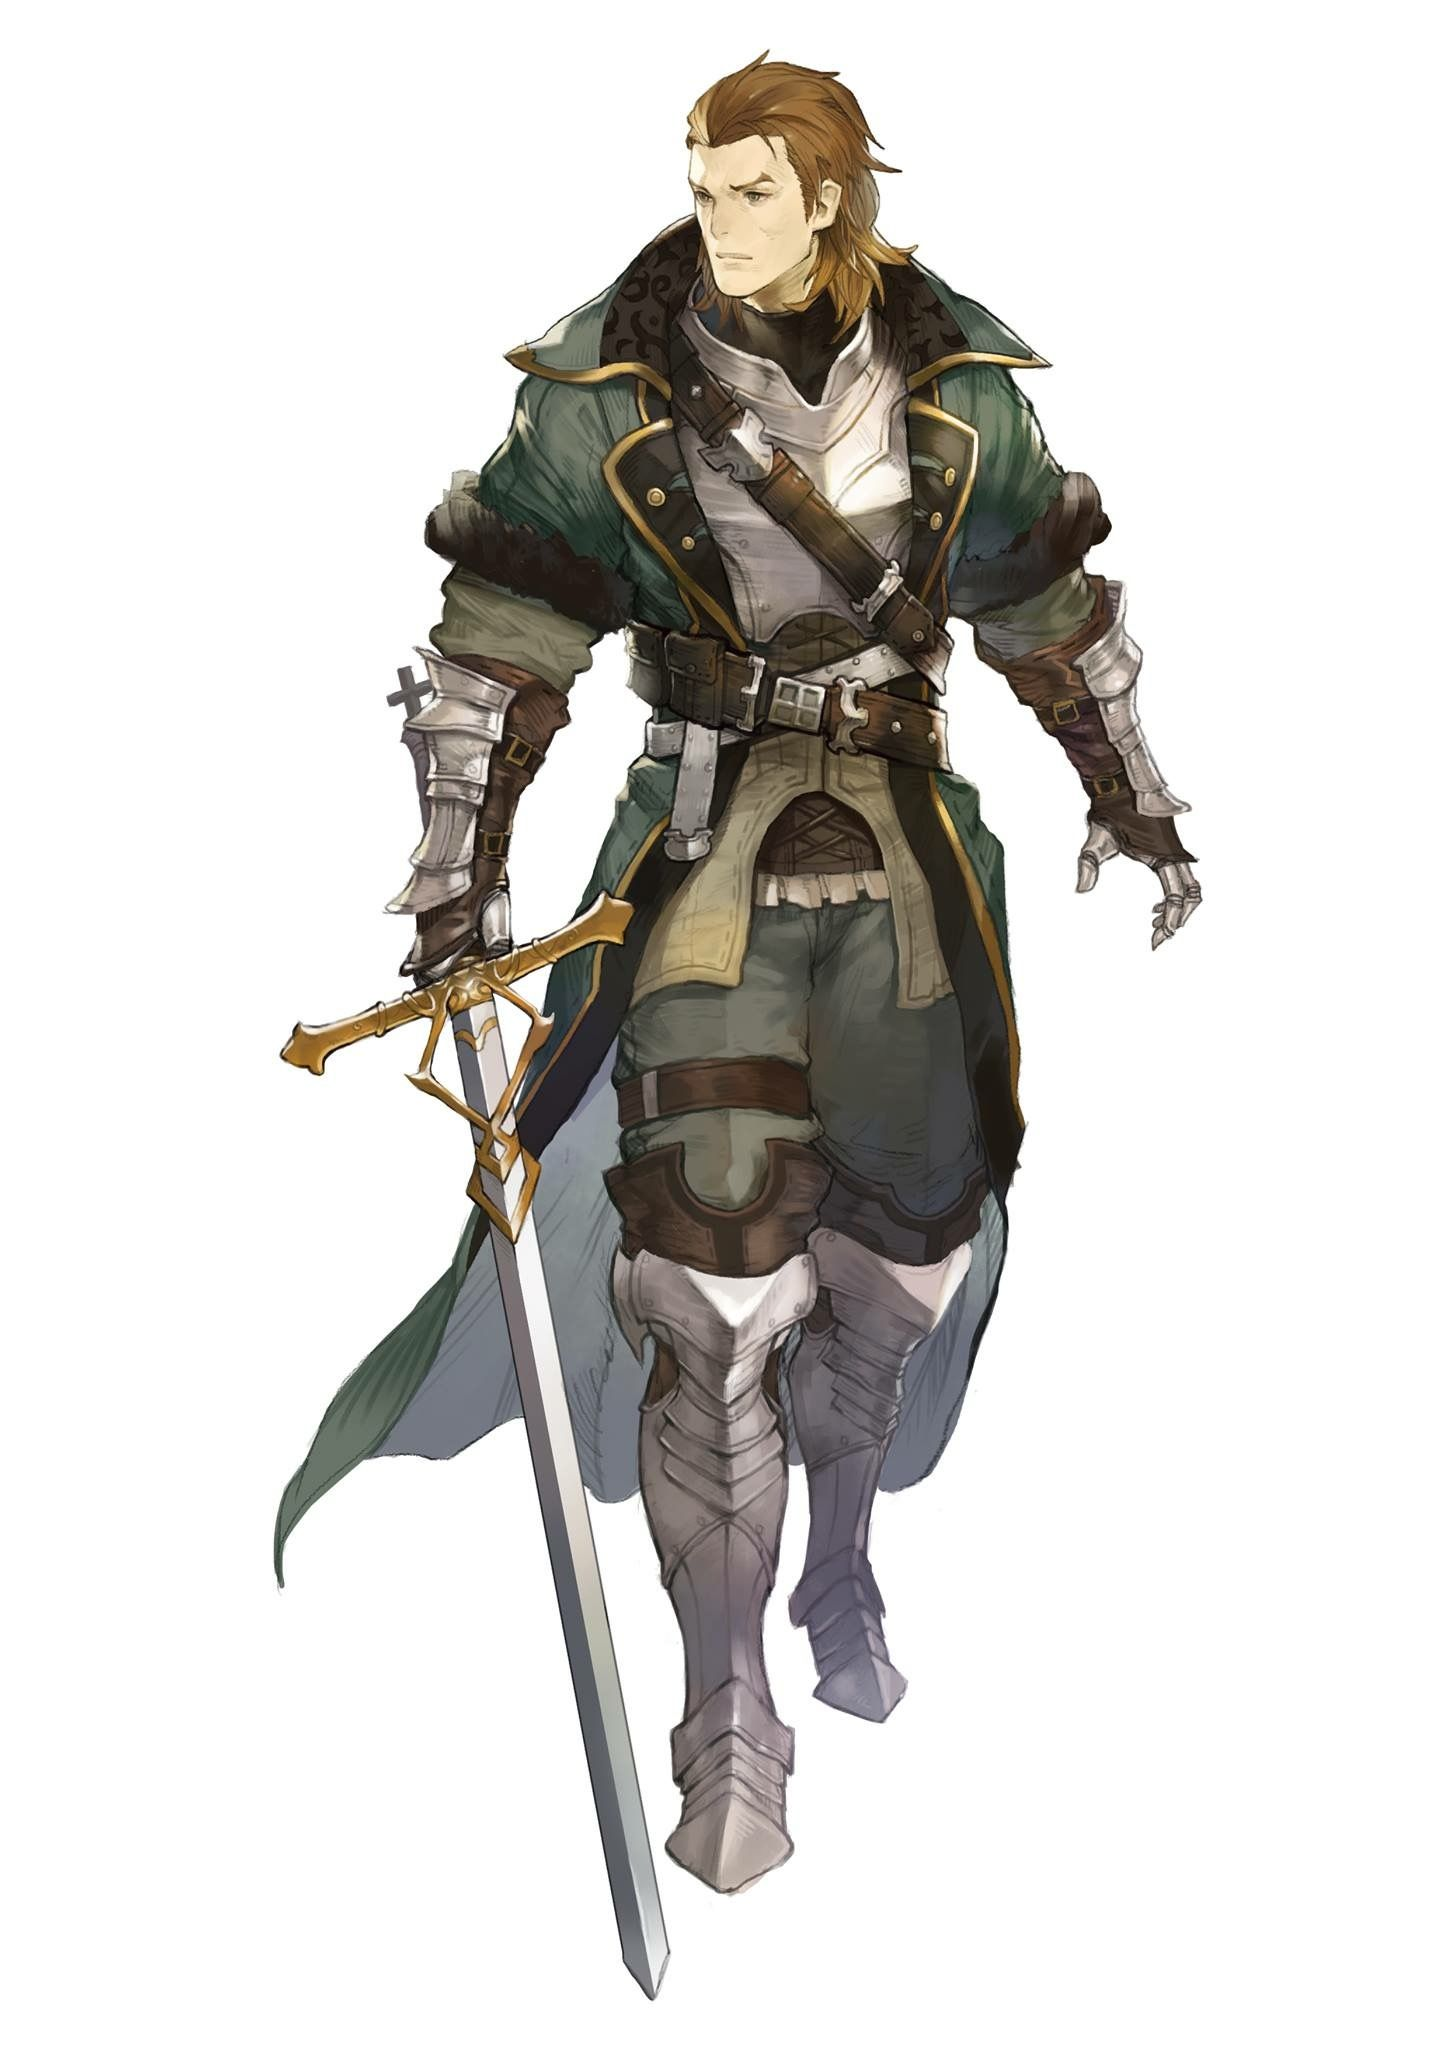 M human paladin cleric | Fantasy character design, Character design male, Dungeons and dragons ...